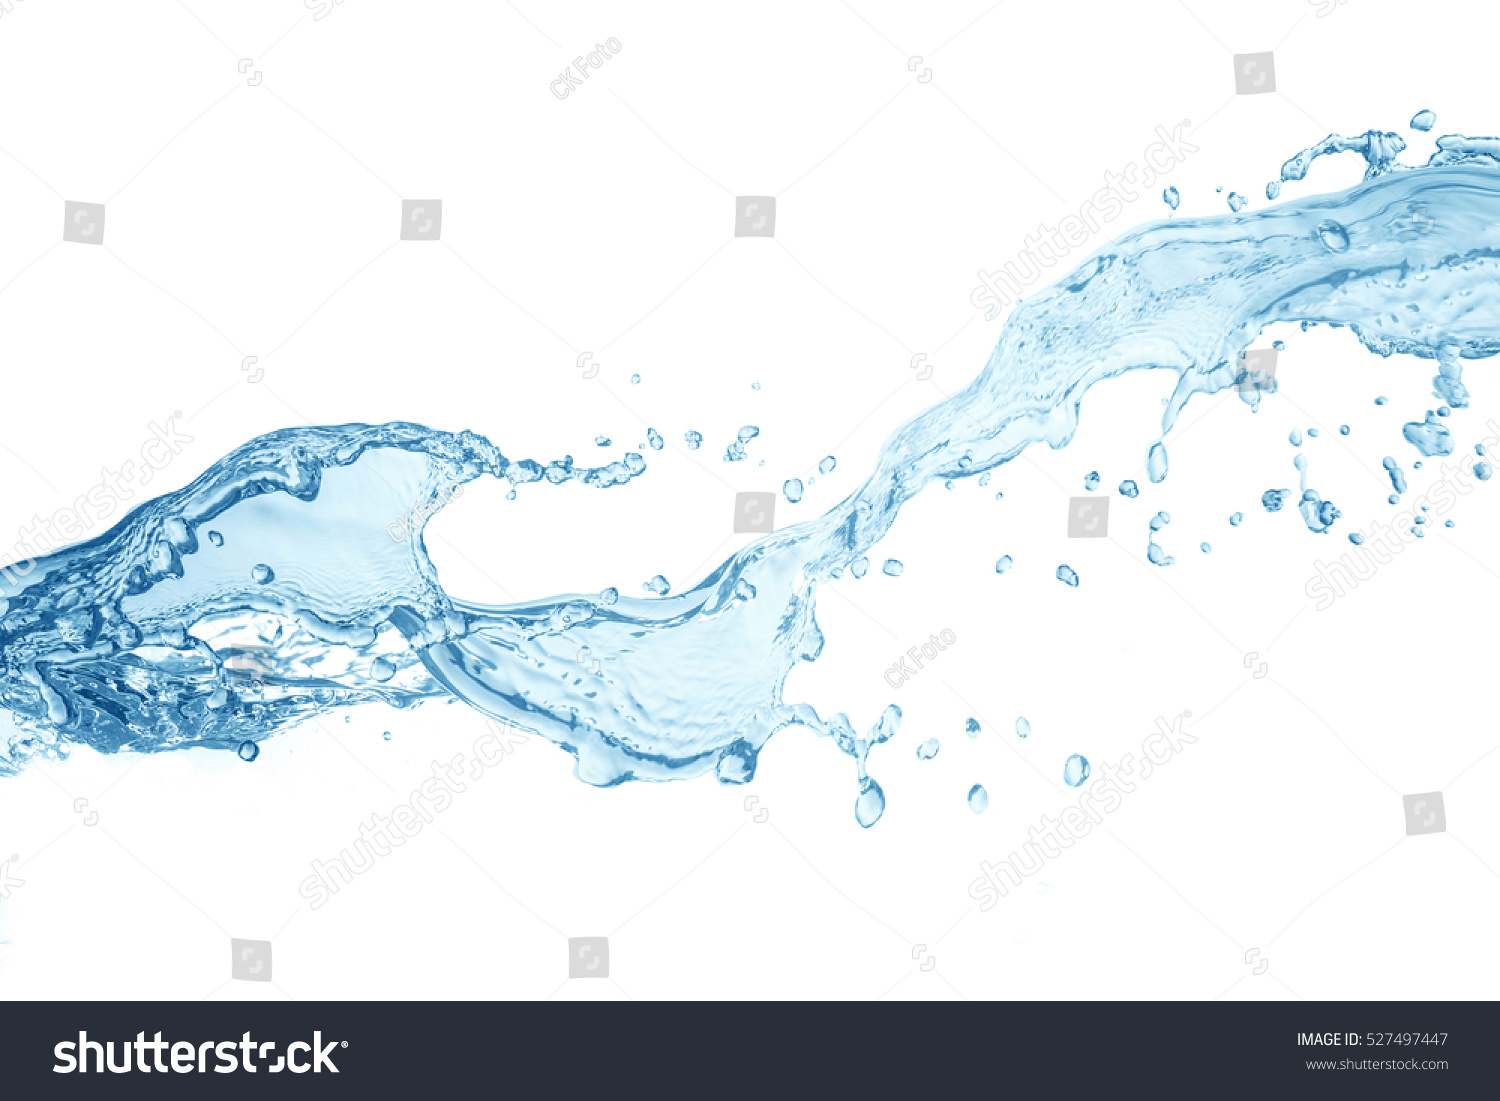 water splash isolated on white background,beautiful splashes a clean water #527497447